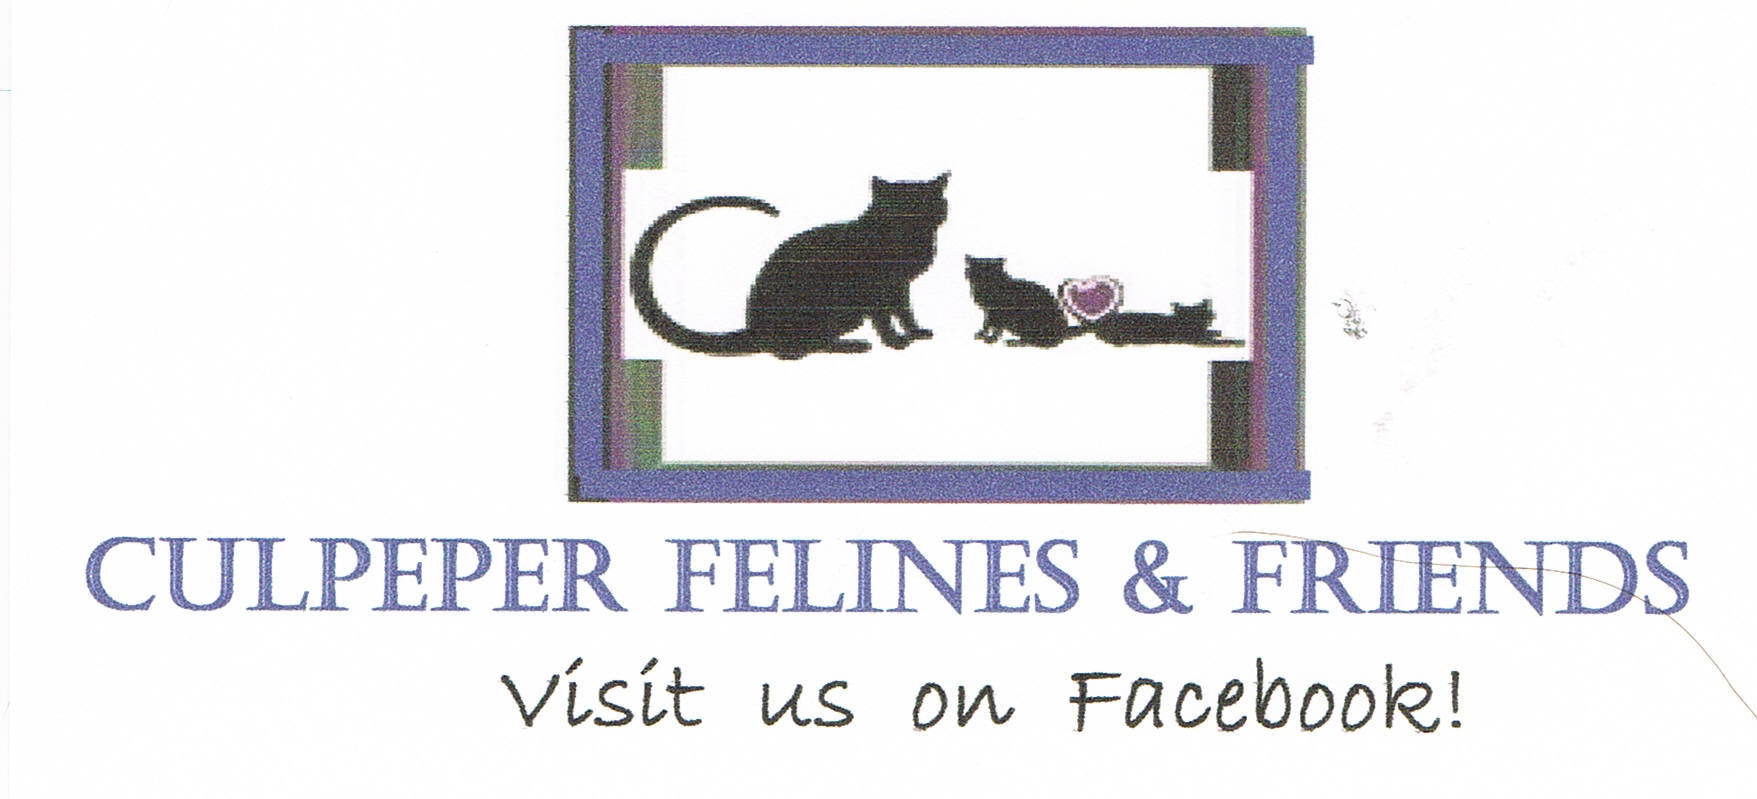 Culpeper Felines & Friends